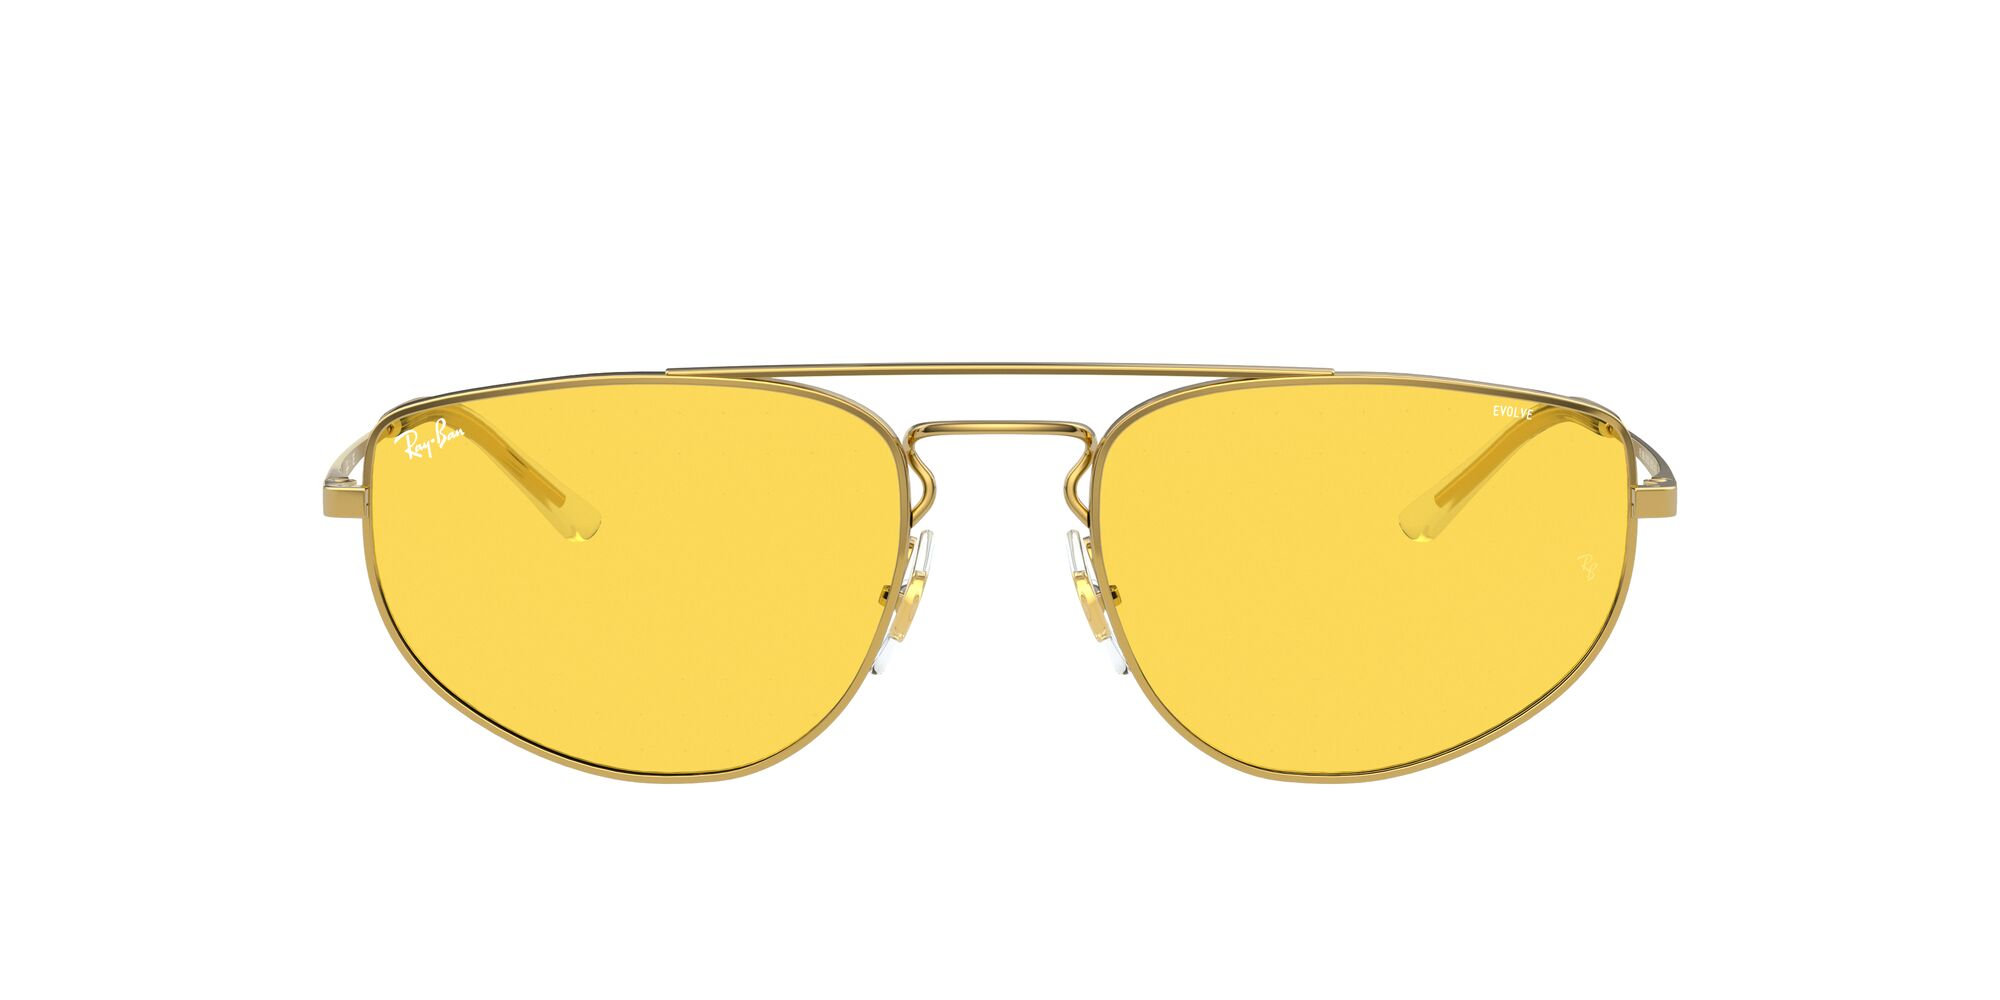 Front Ray-Ban Ray-Ban 0RB3668 001/Q1 55/19 Goud/Geel